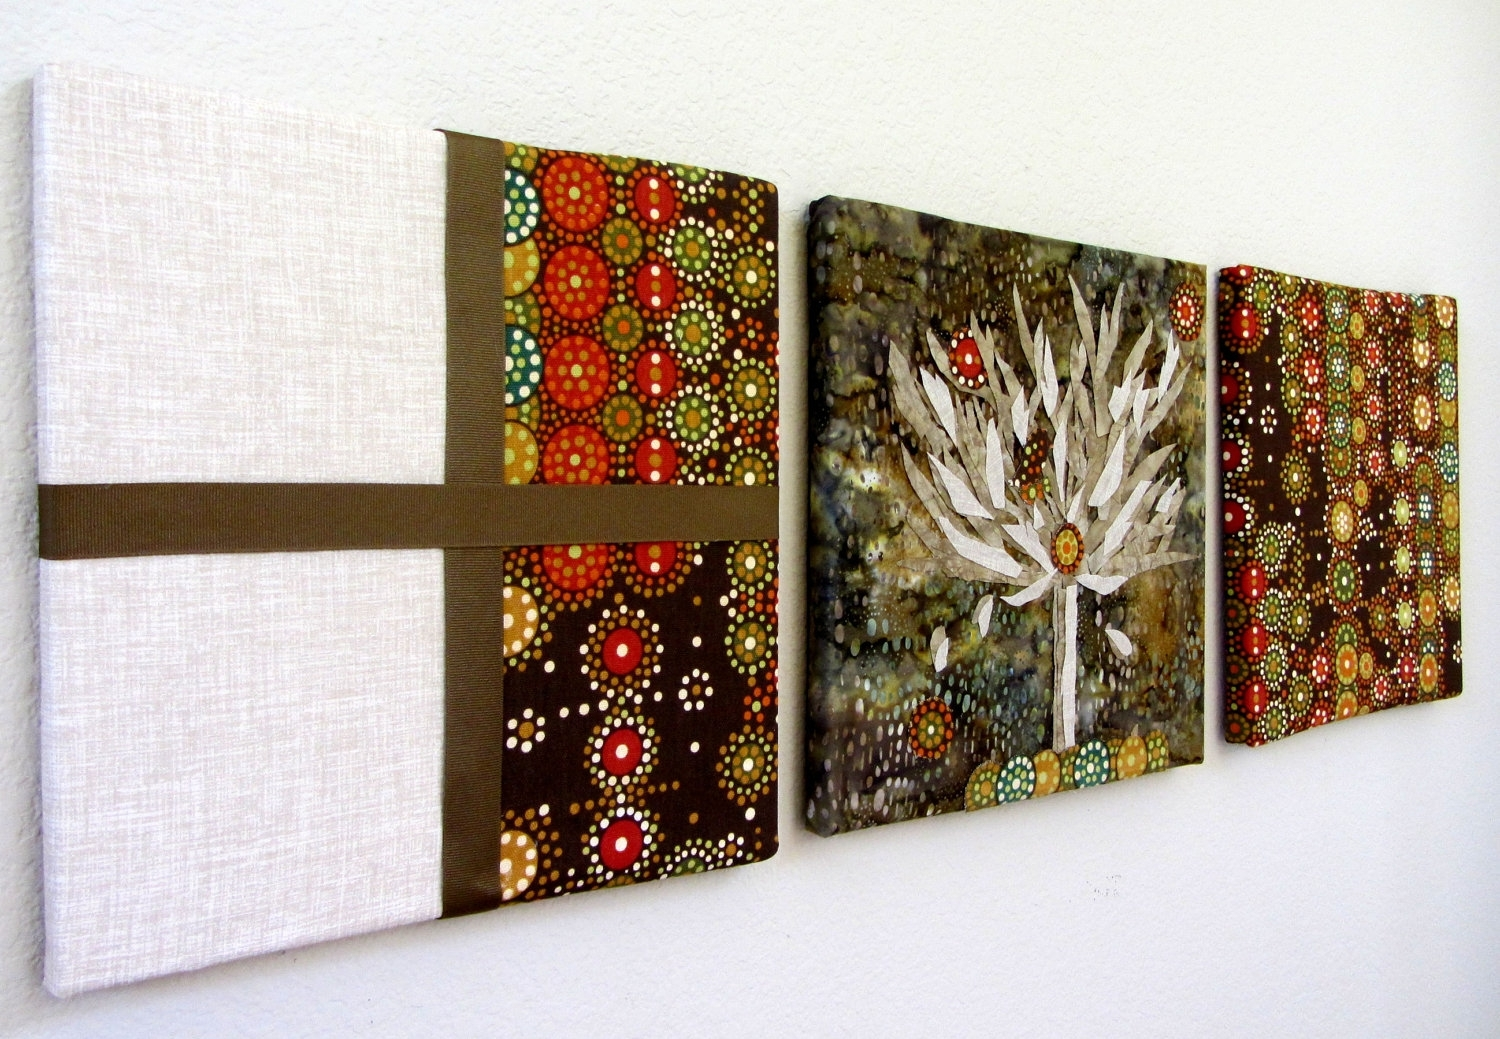 Creative Wall Art #10373 Regarding Current Contemporary Textile Wall Art (View 10 of 15)